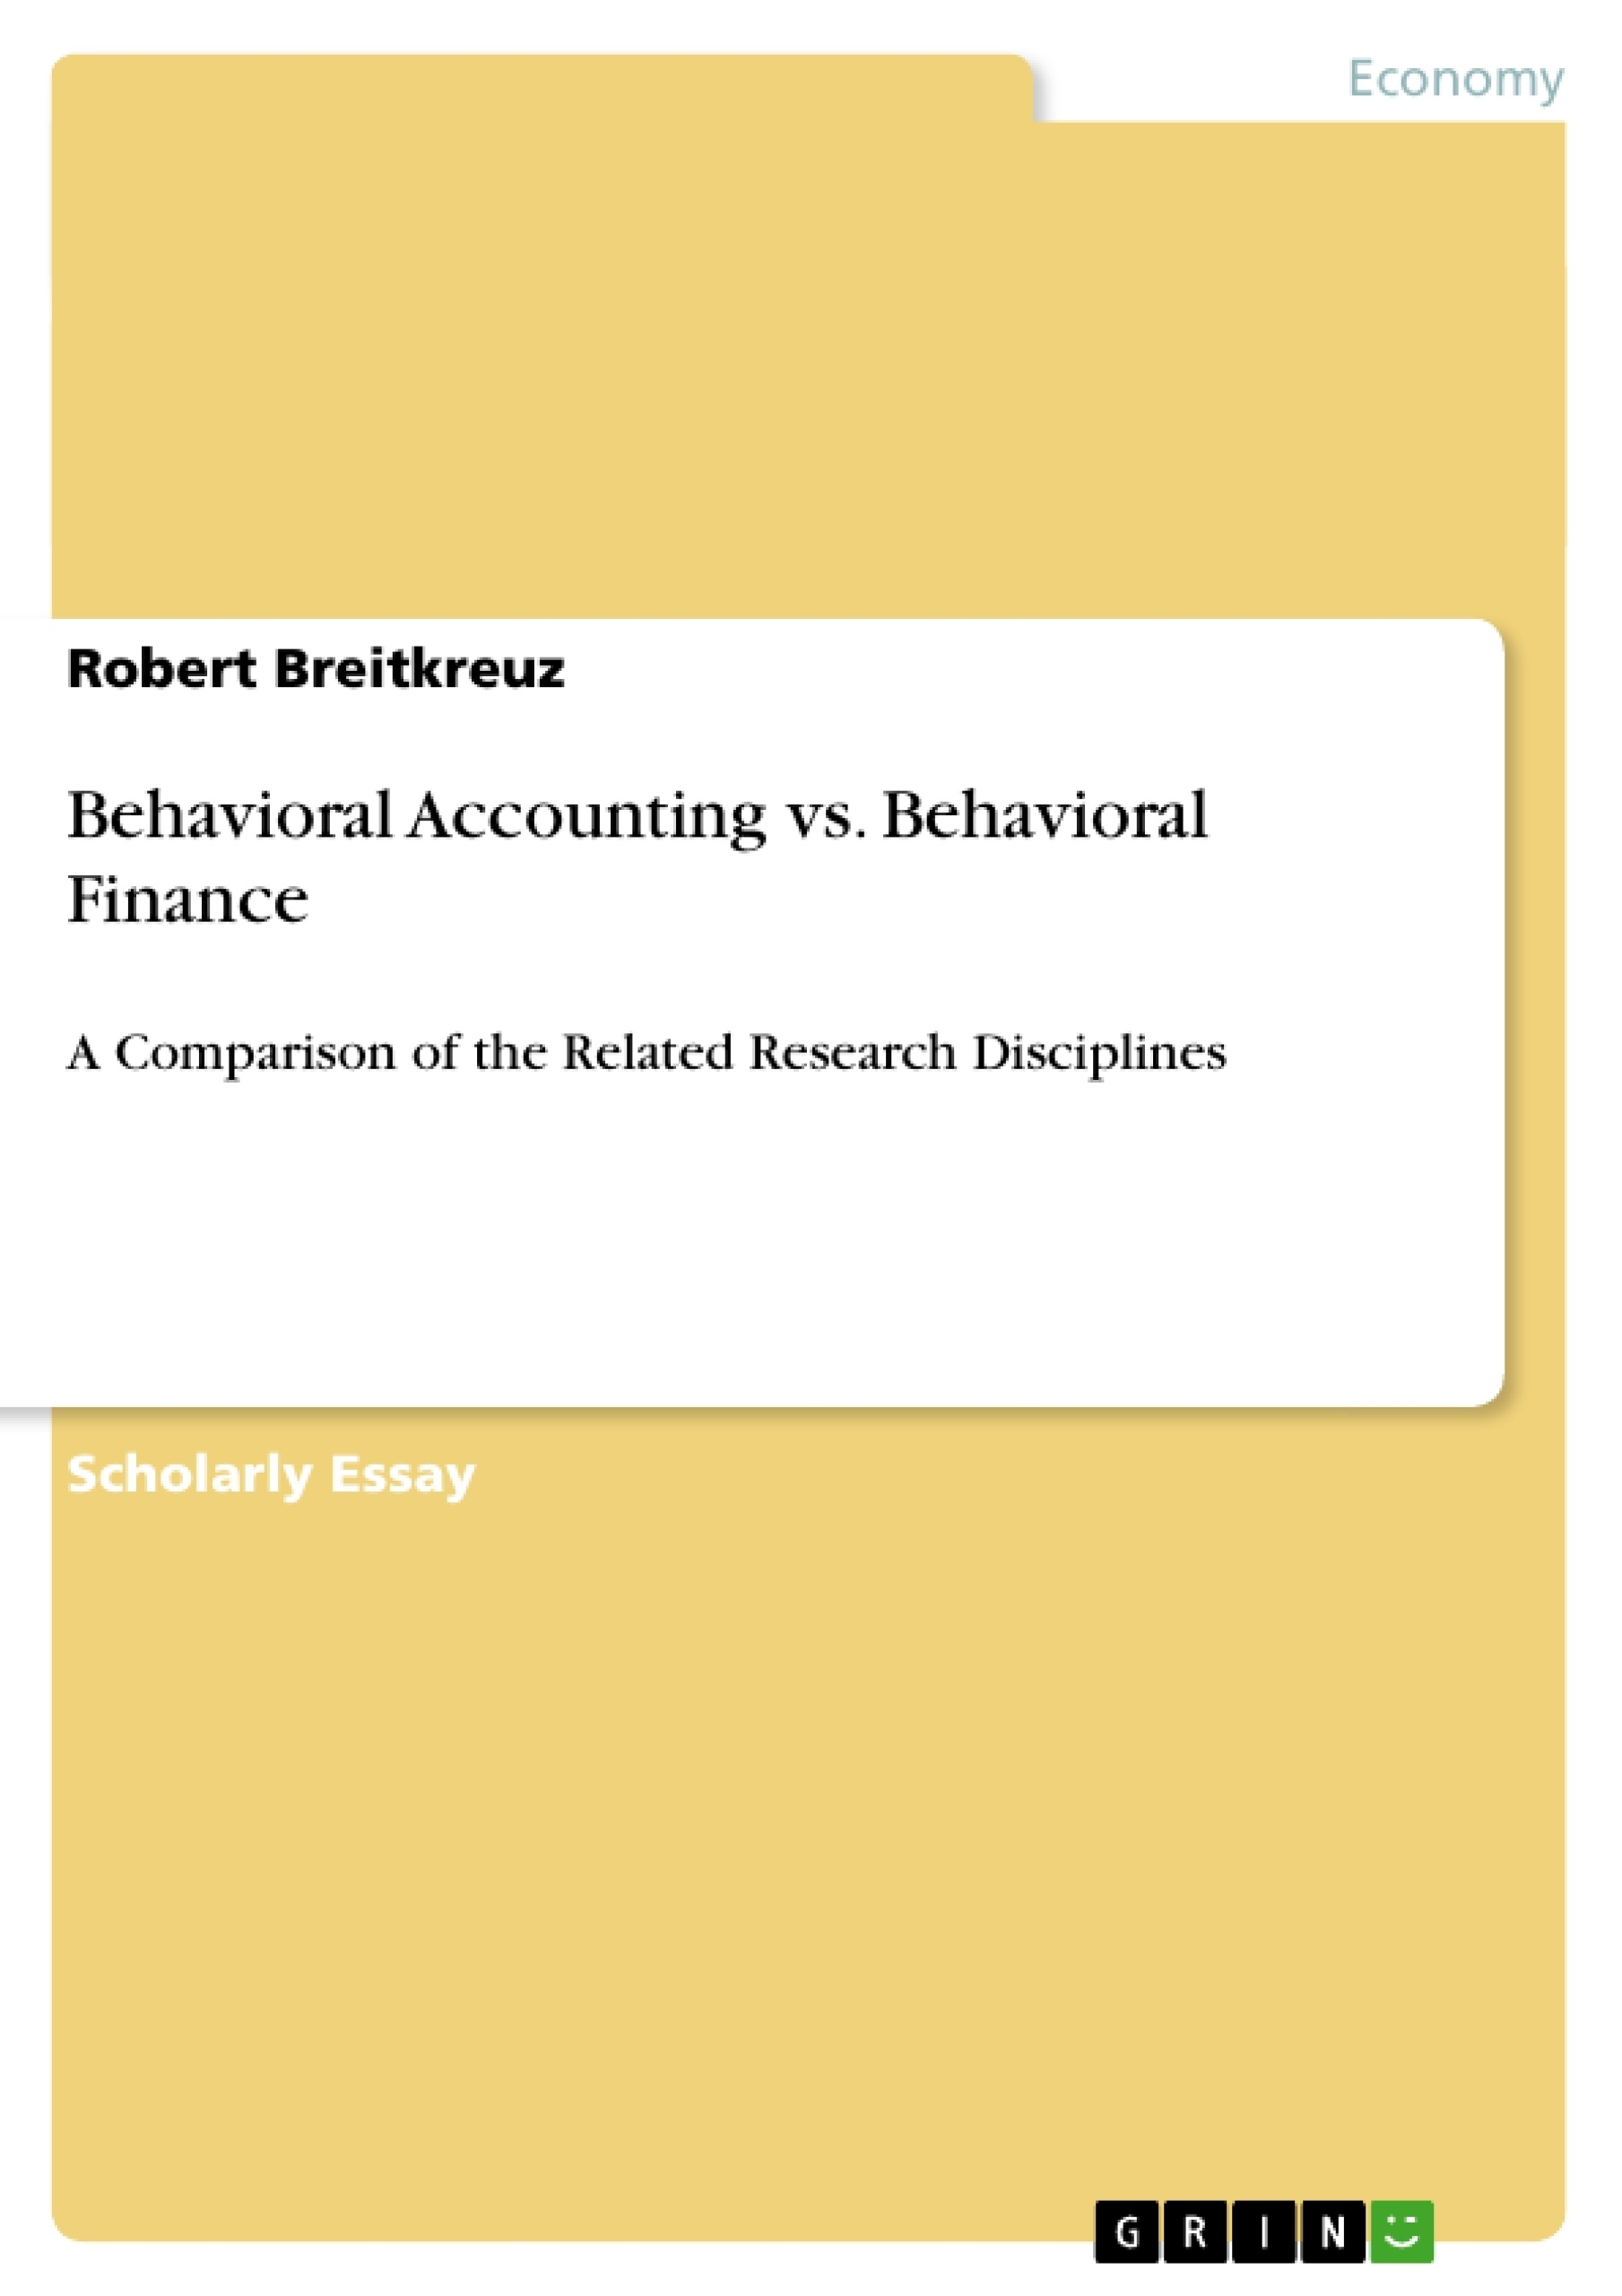 behavioral accounting vs behavioral finance publish your behavioral finance publish your master s thesis bachelor s thesis essay or term paper